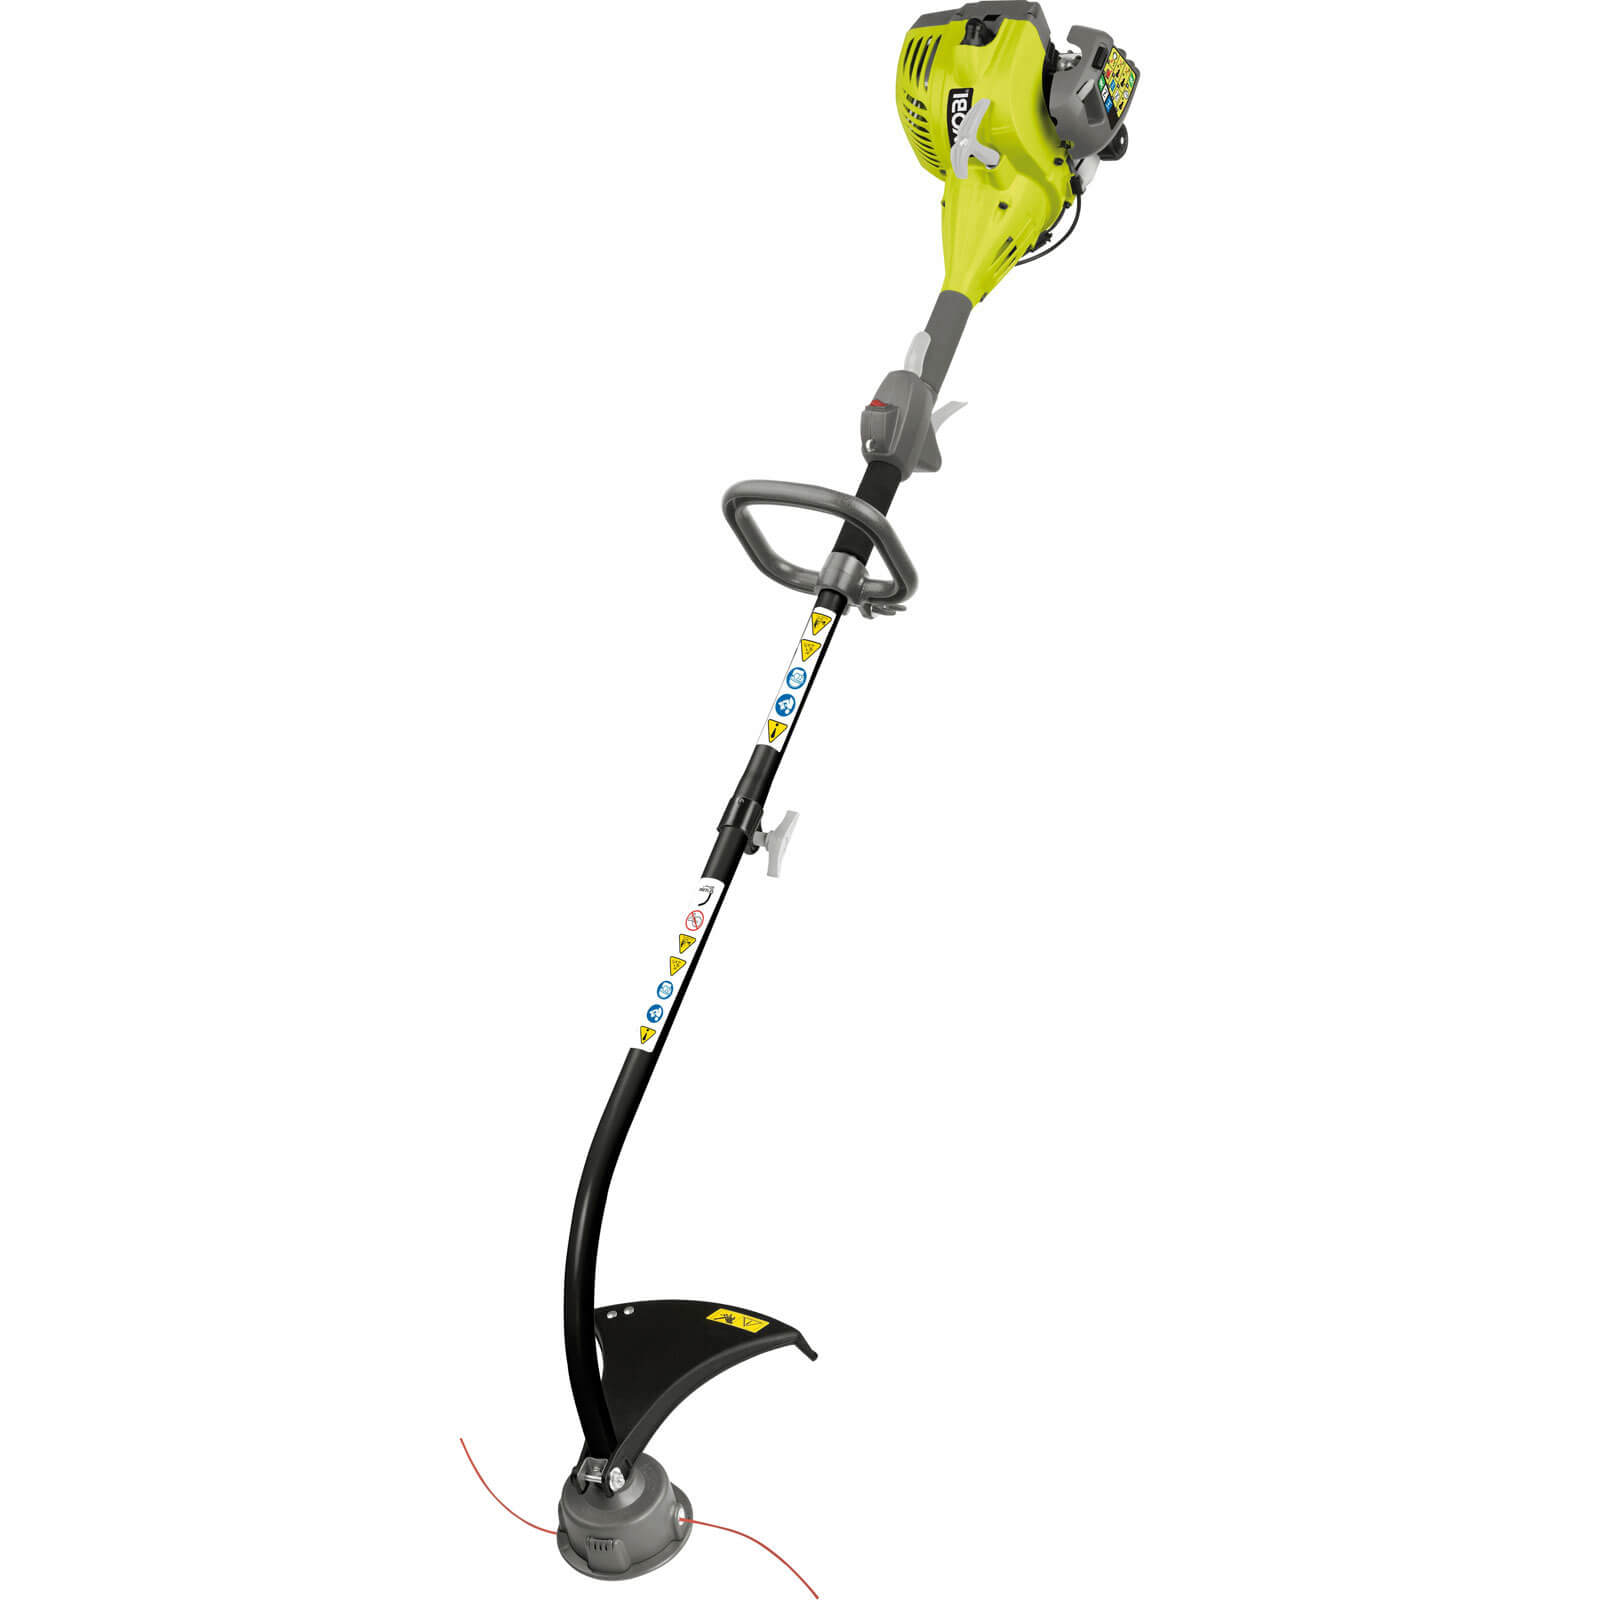 Ryobi RLT26CDS Petrol Grass Trimmer 430mm Cut Width with 26cc Start Easy 2 Stroke Engine is Expandit Compatible